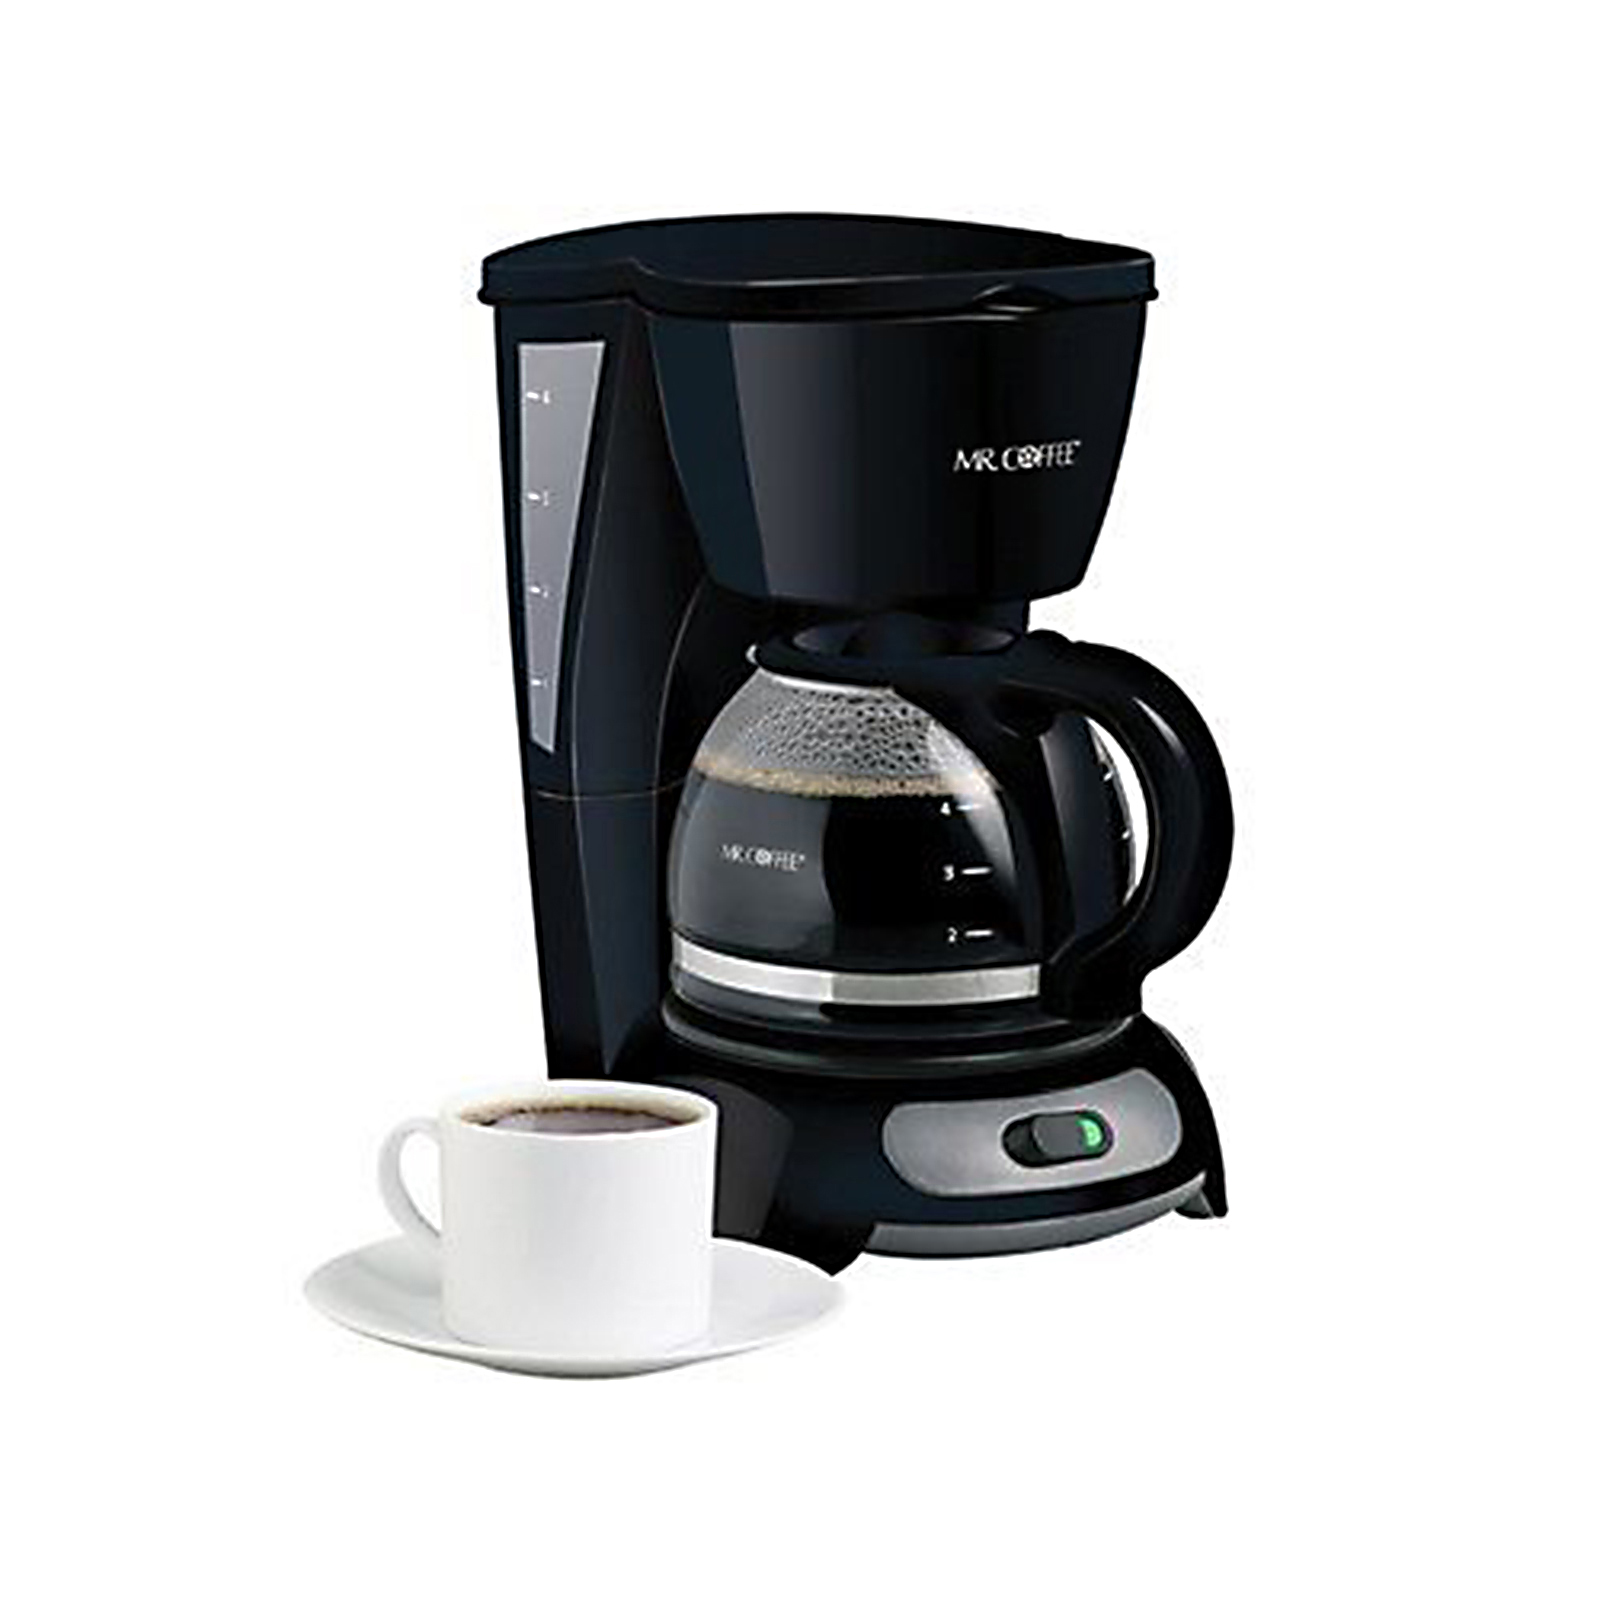 4-Cup Coffee Maker - Black